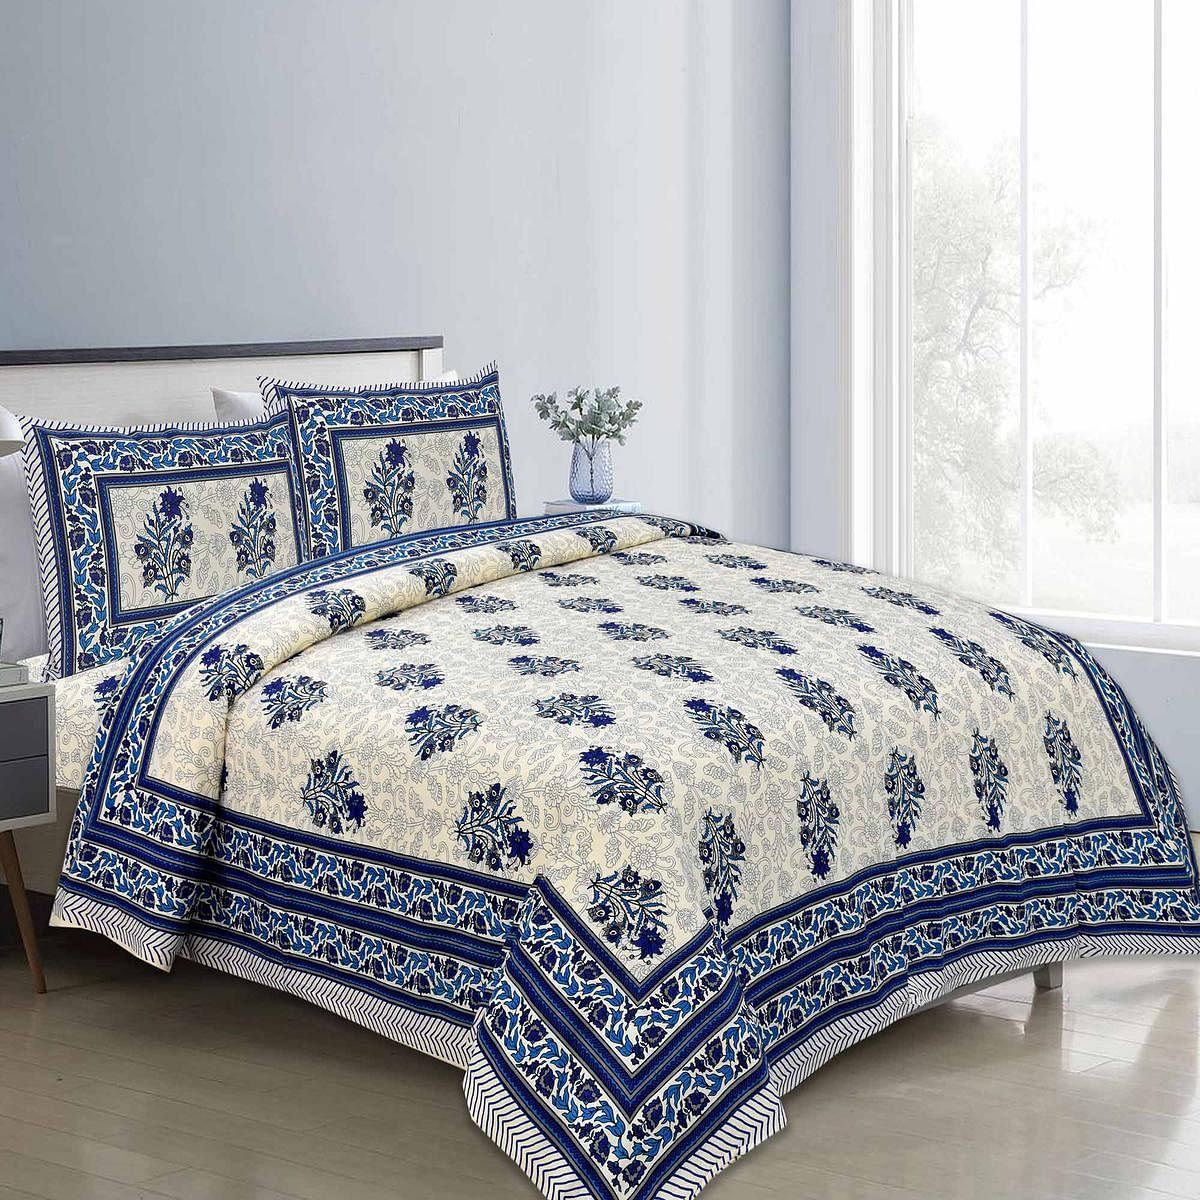 Magnetic Navy Blue Colored Floral Printed Pure Cotton Double Bedsheet With Pillow Cover